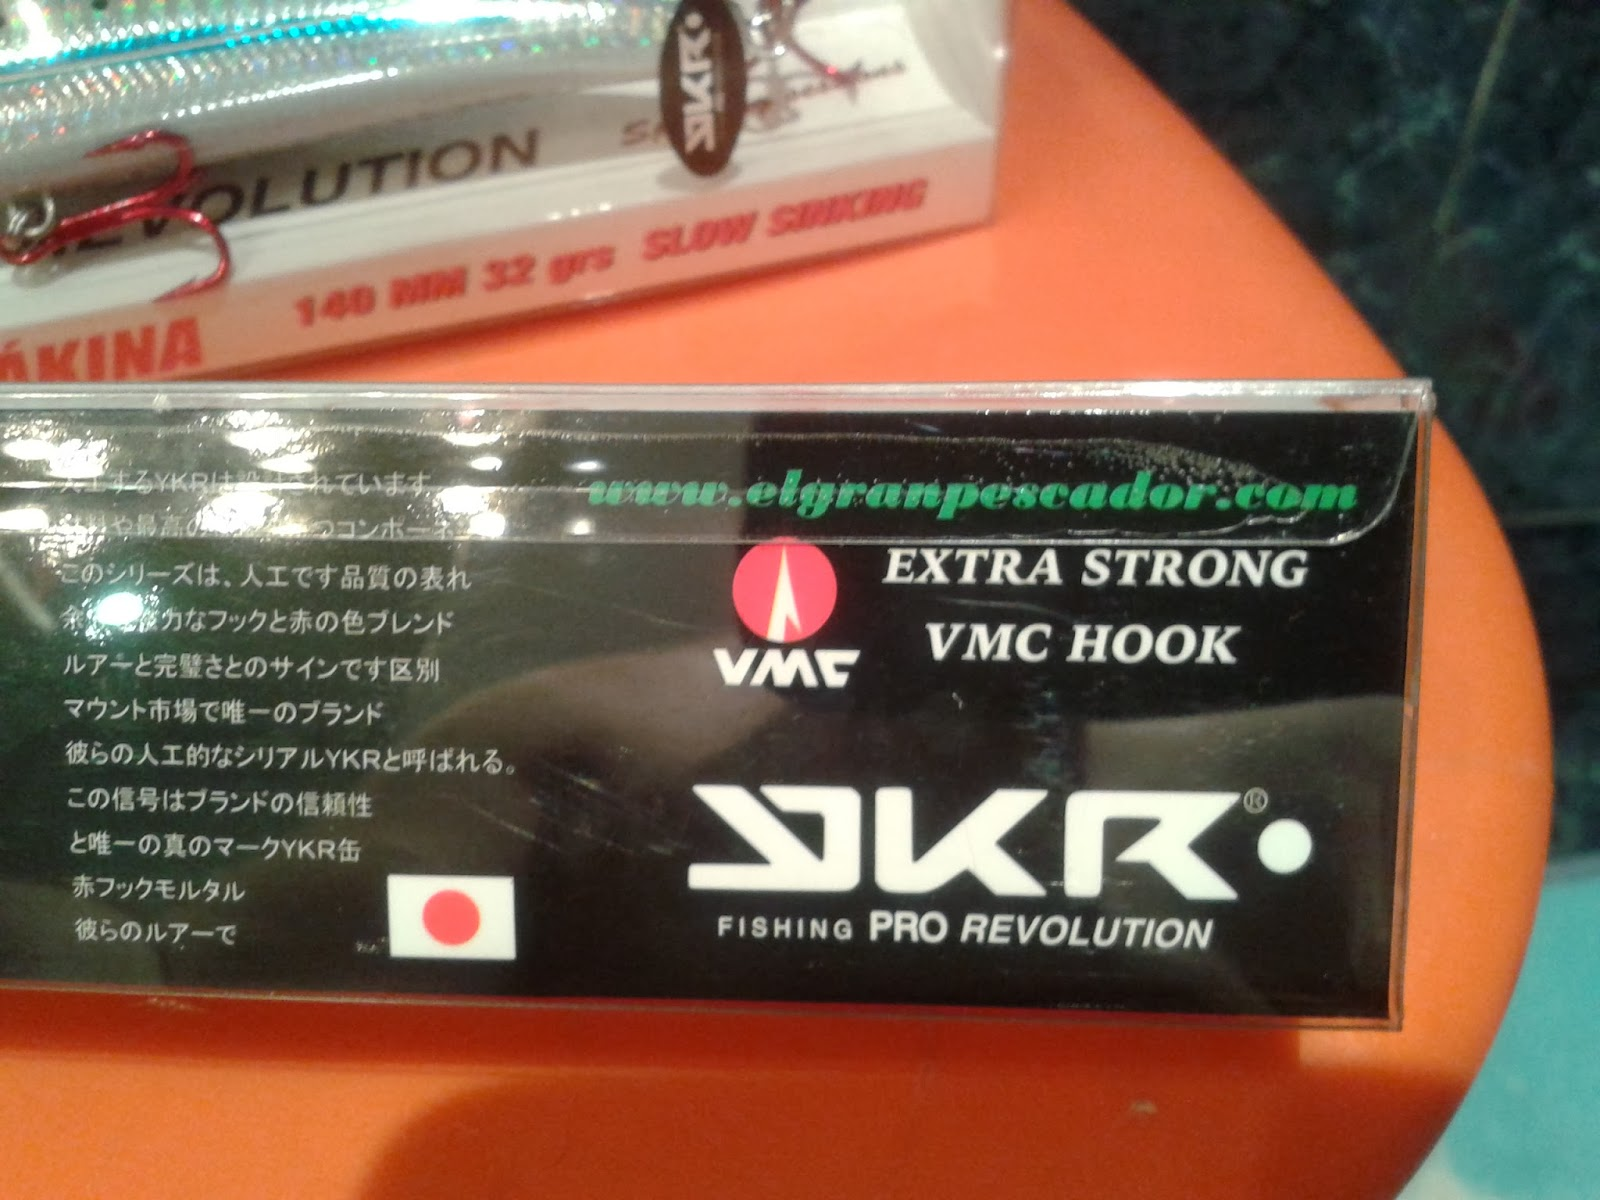 rickyvadepesca: YKR FISHING PRO REVOLUTION: Tienda EL GRAN ... - photo#32